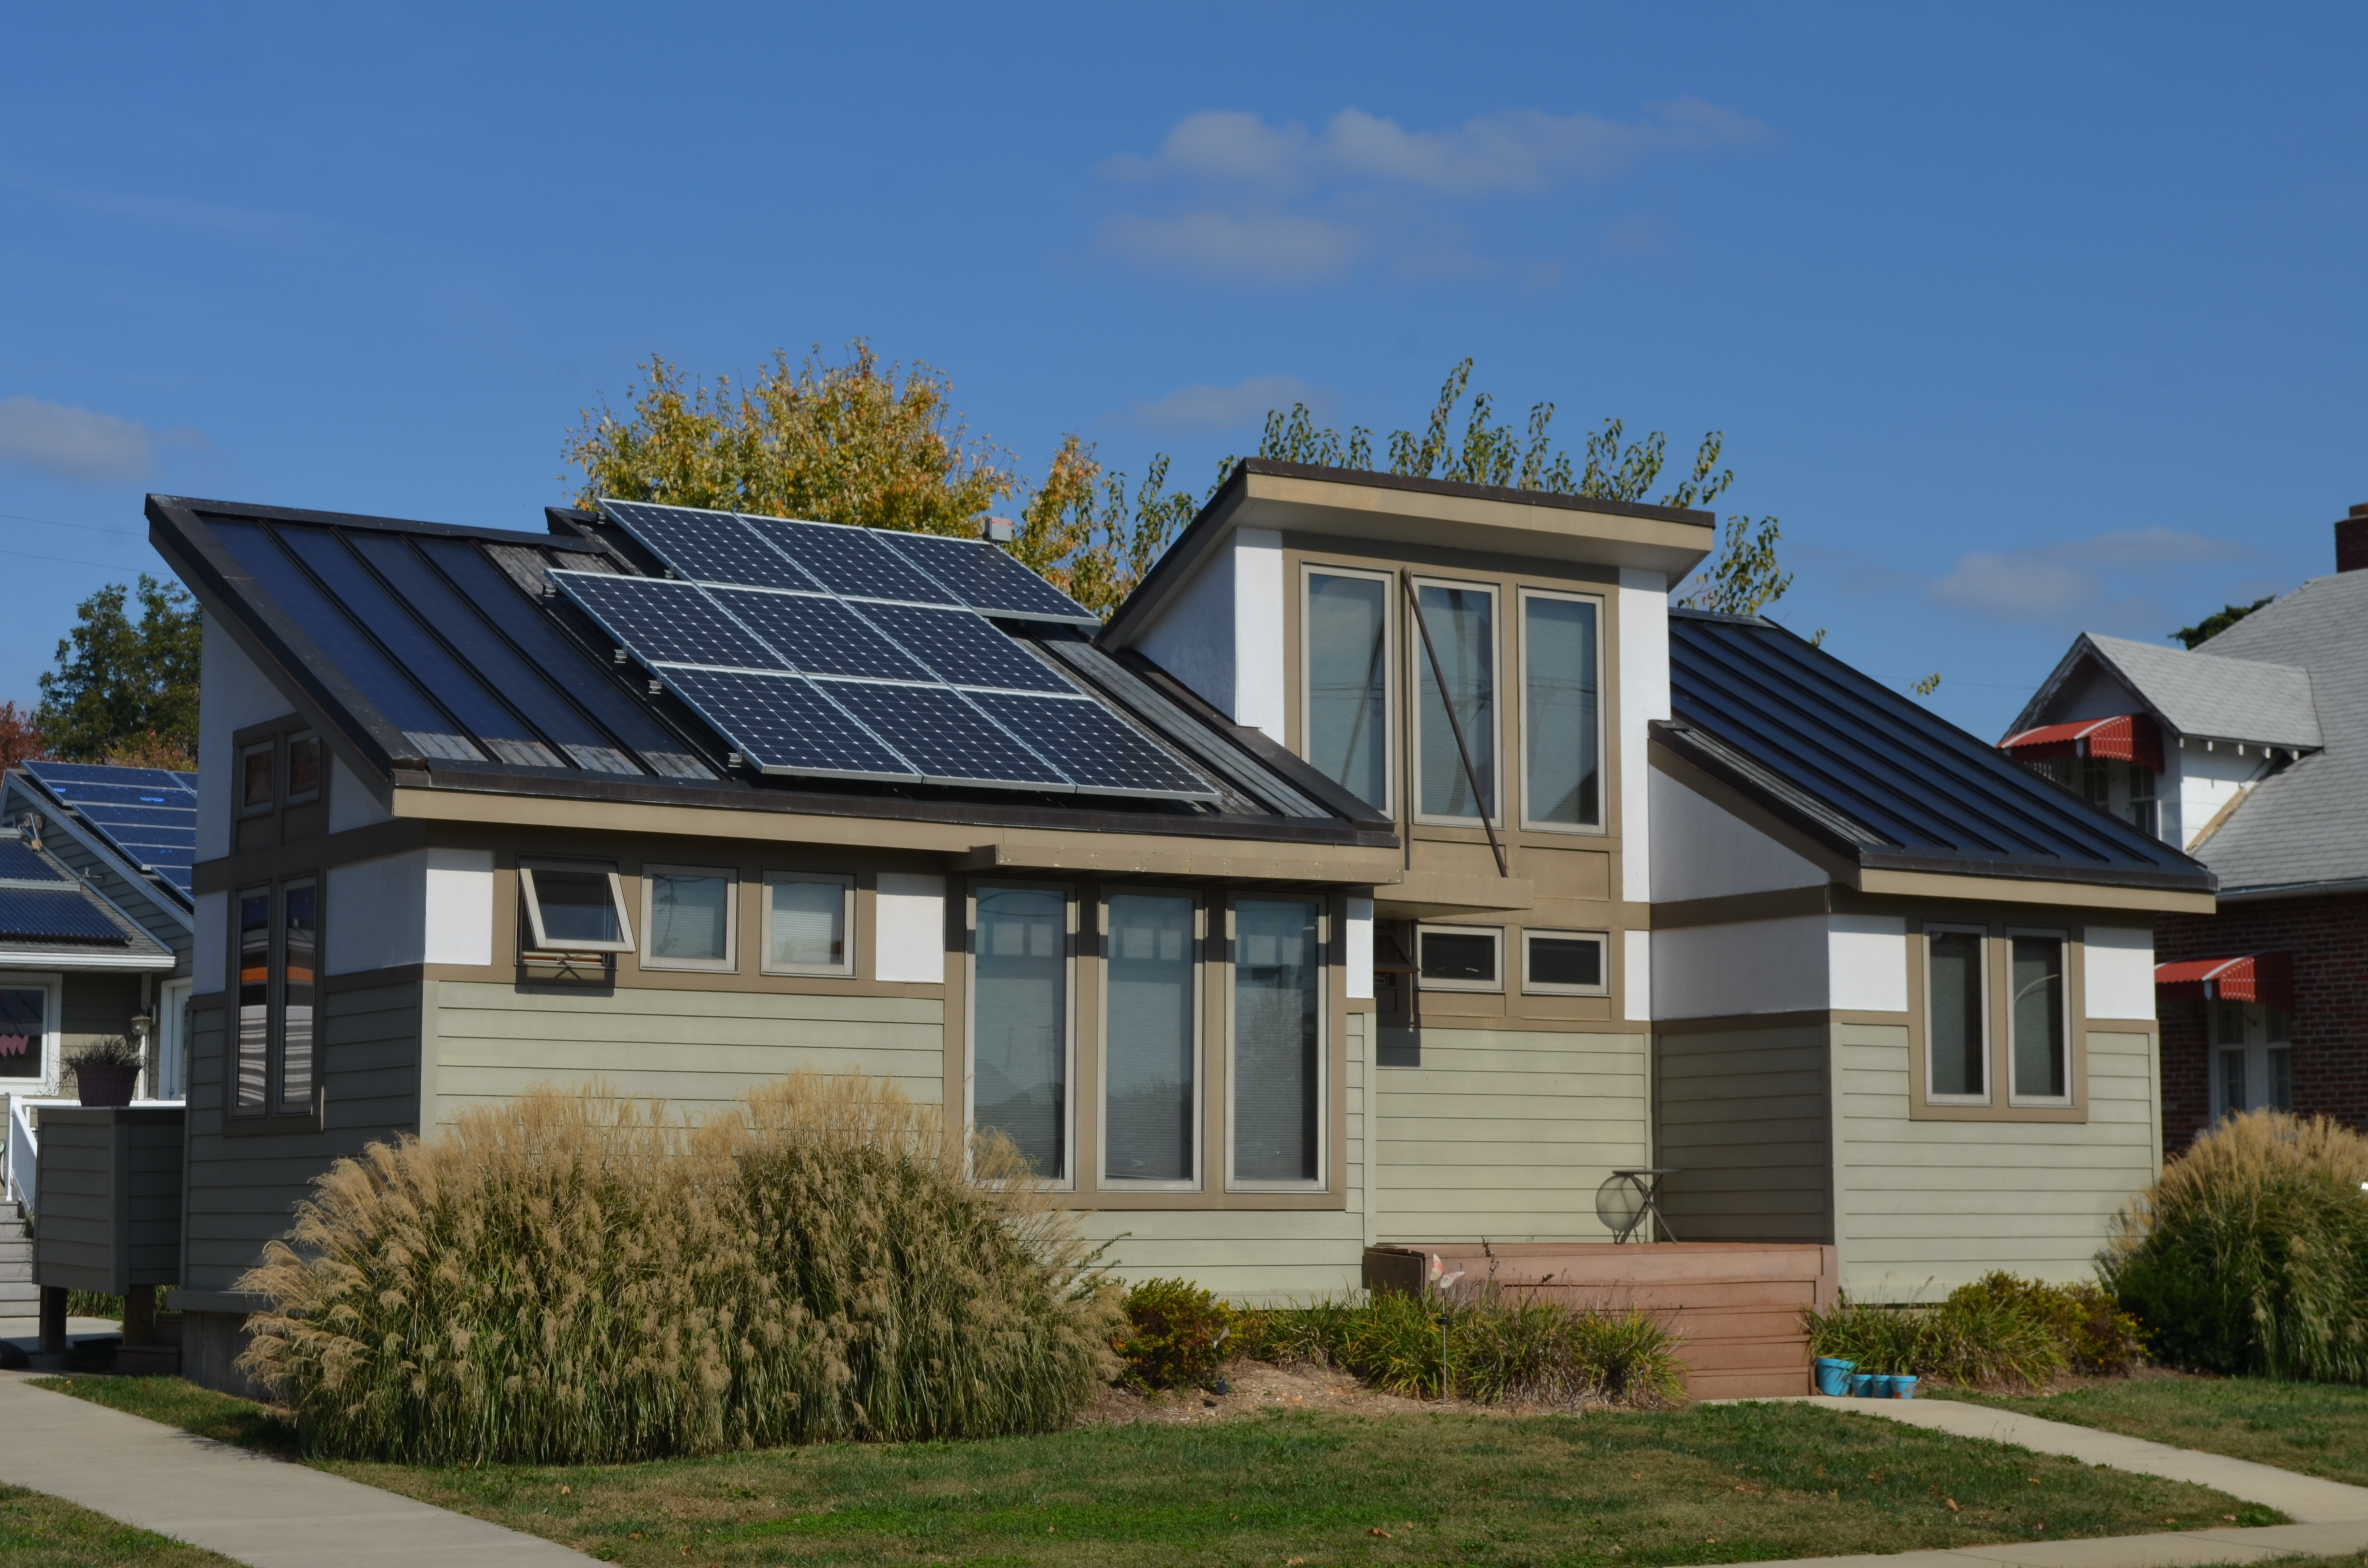 Missouri S T Solar House Design Team Rise With Us